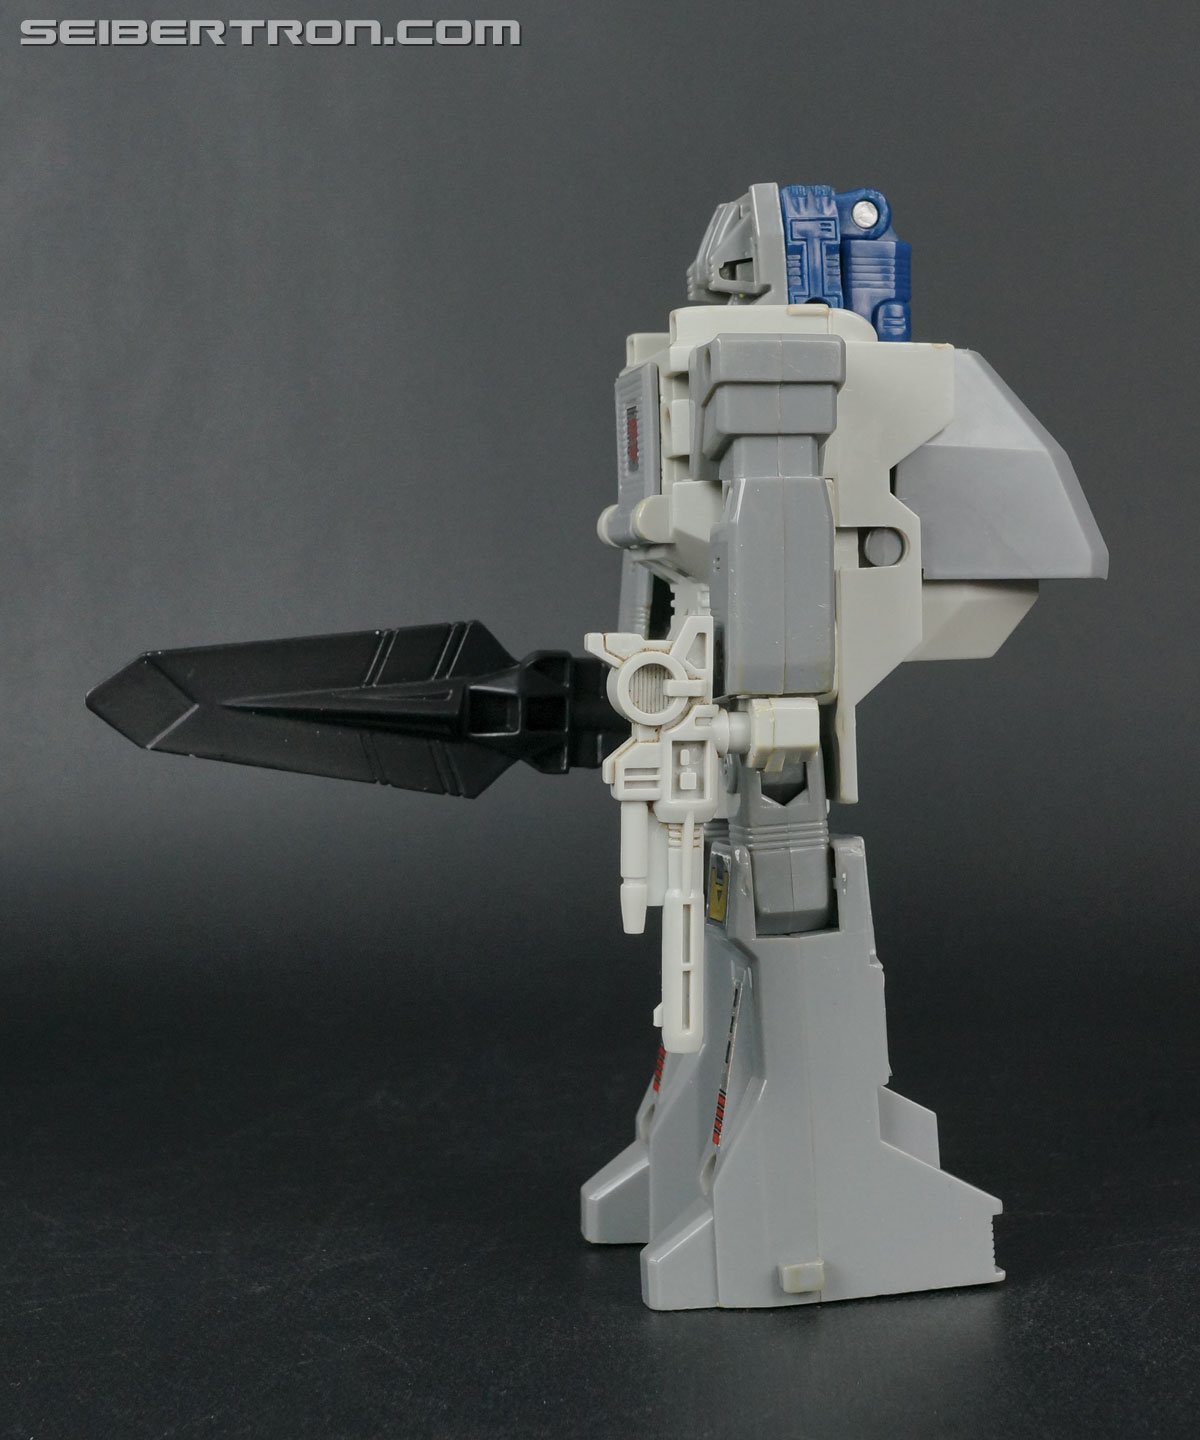 Transformers G1 1987 Cerebros (Fortress) (Image #85 of 146)